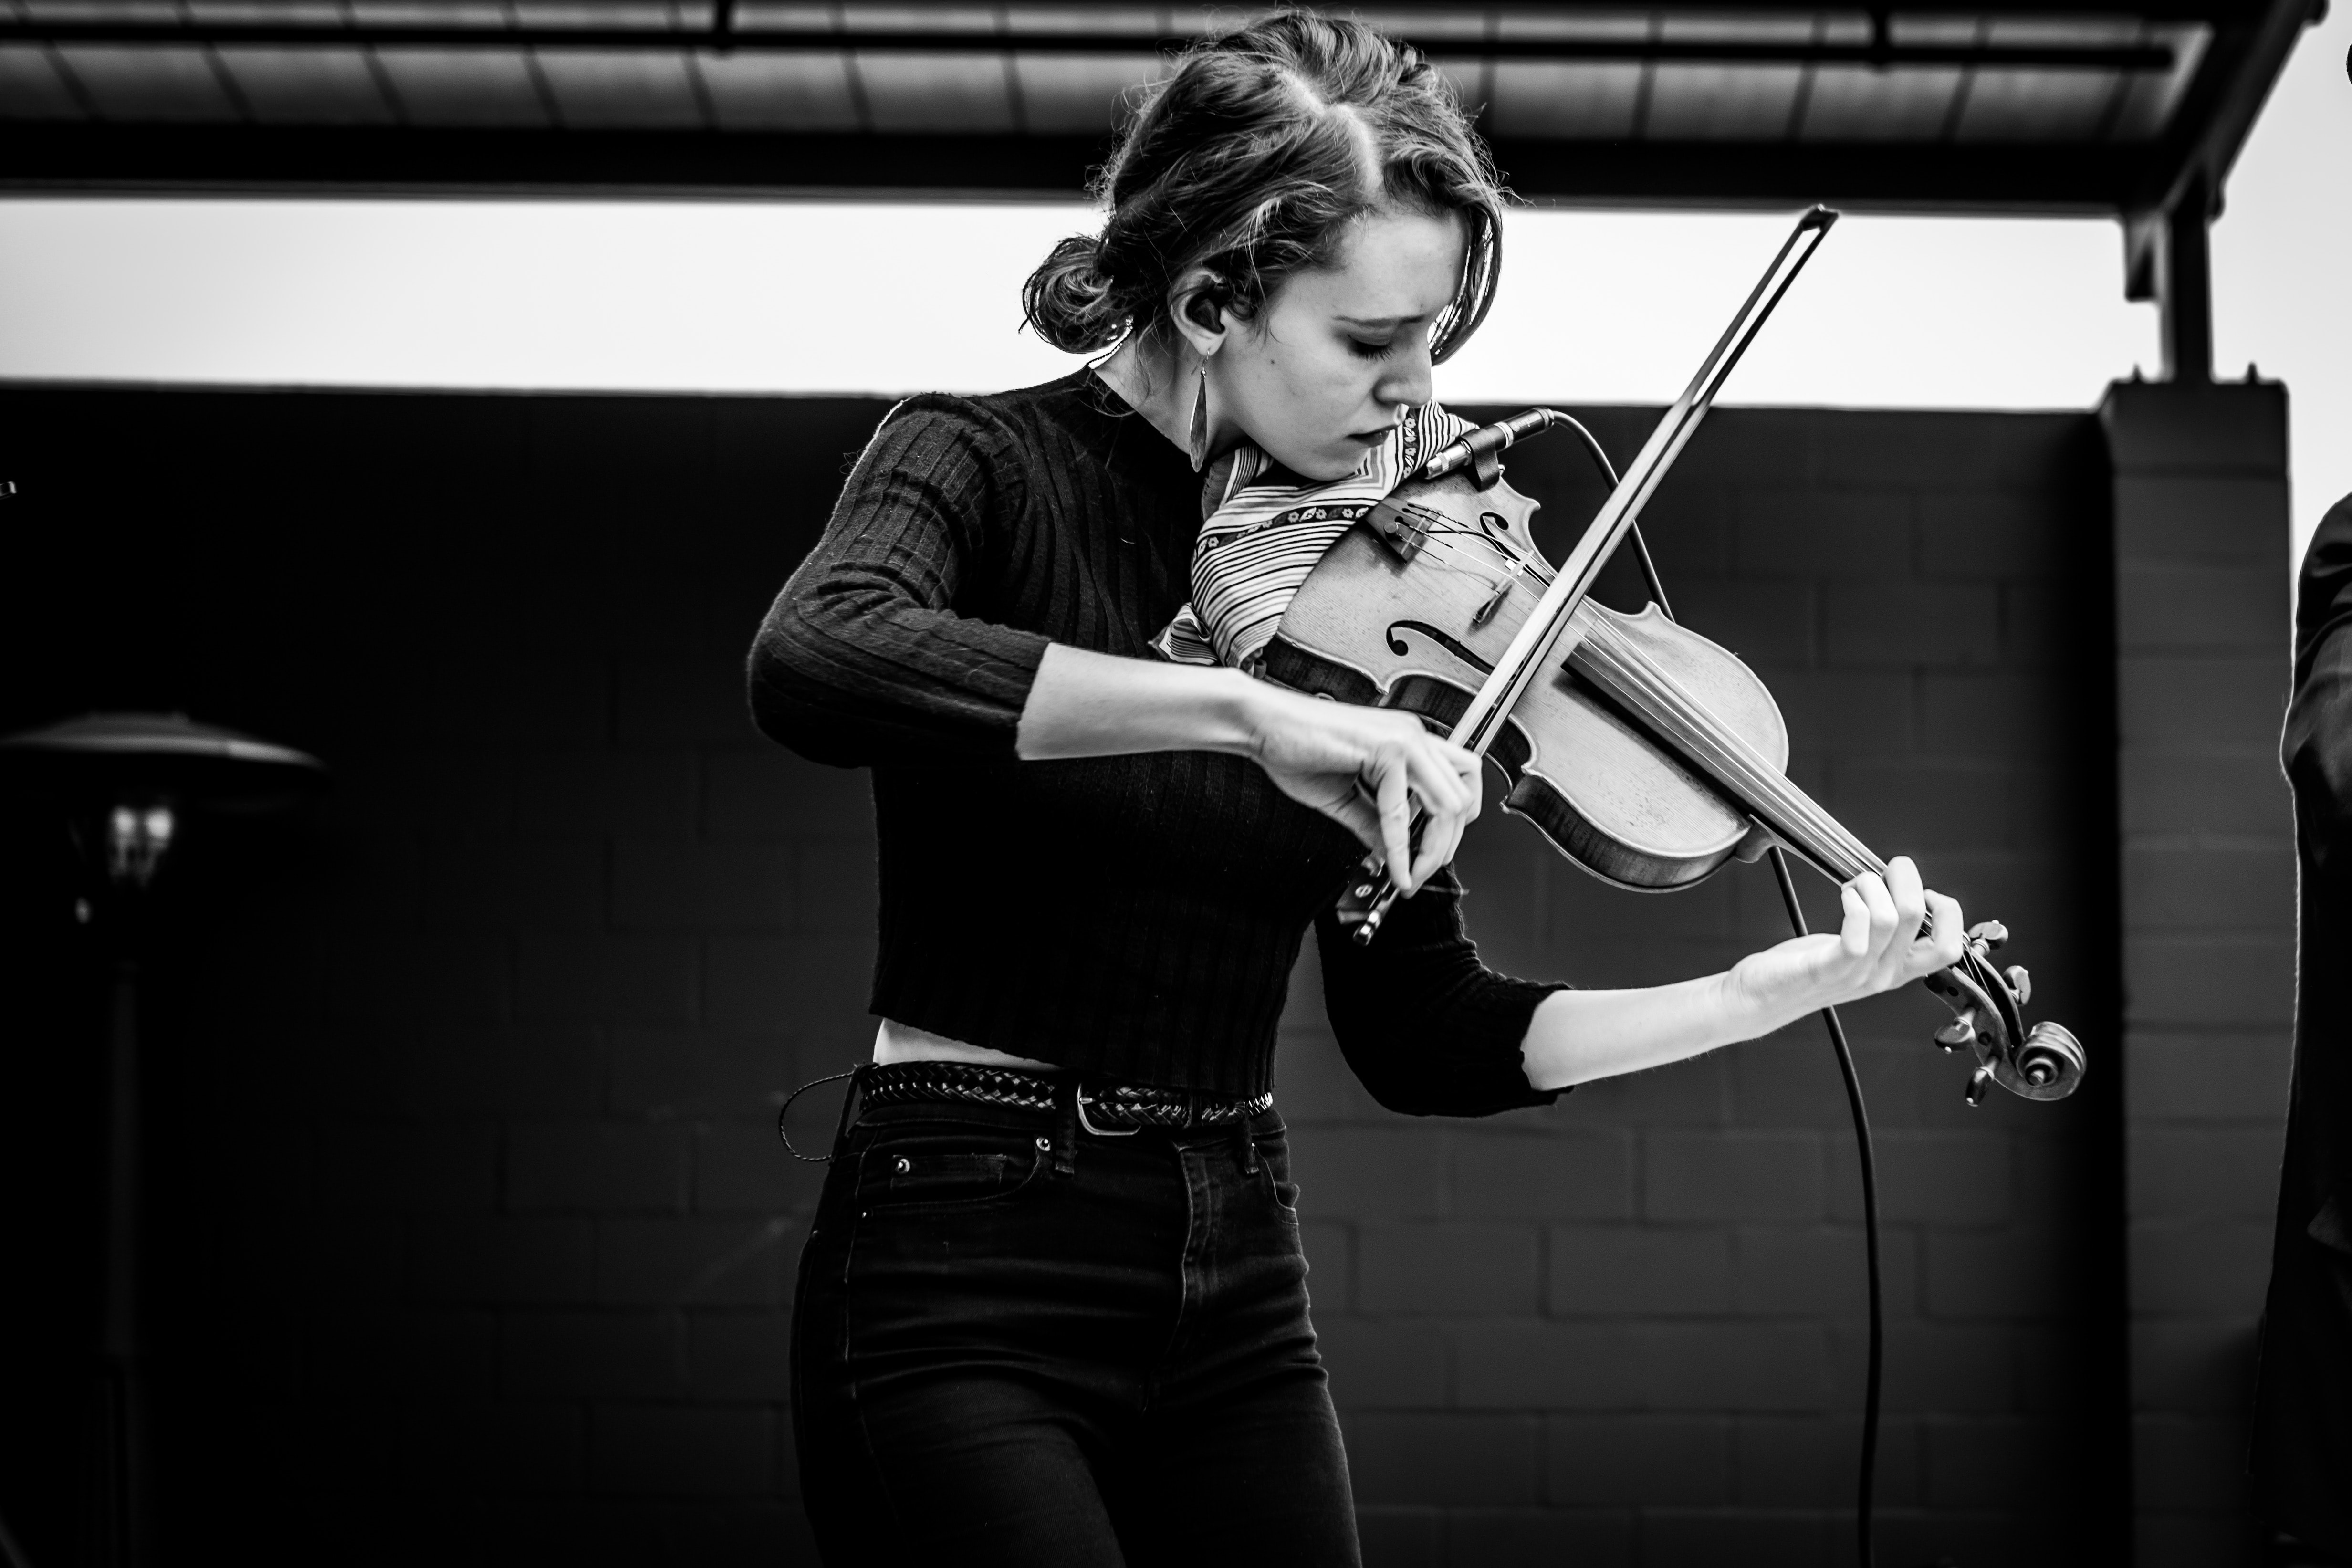 grayscale photo of woman playing violin